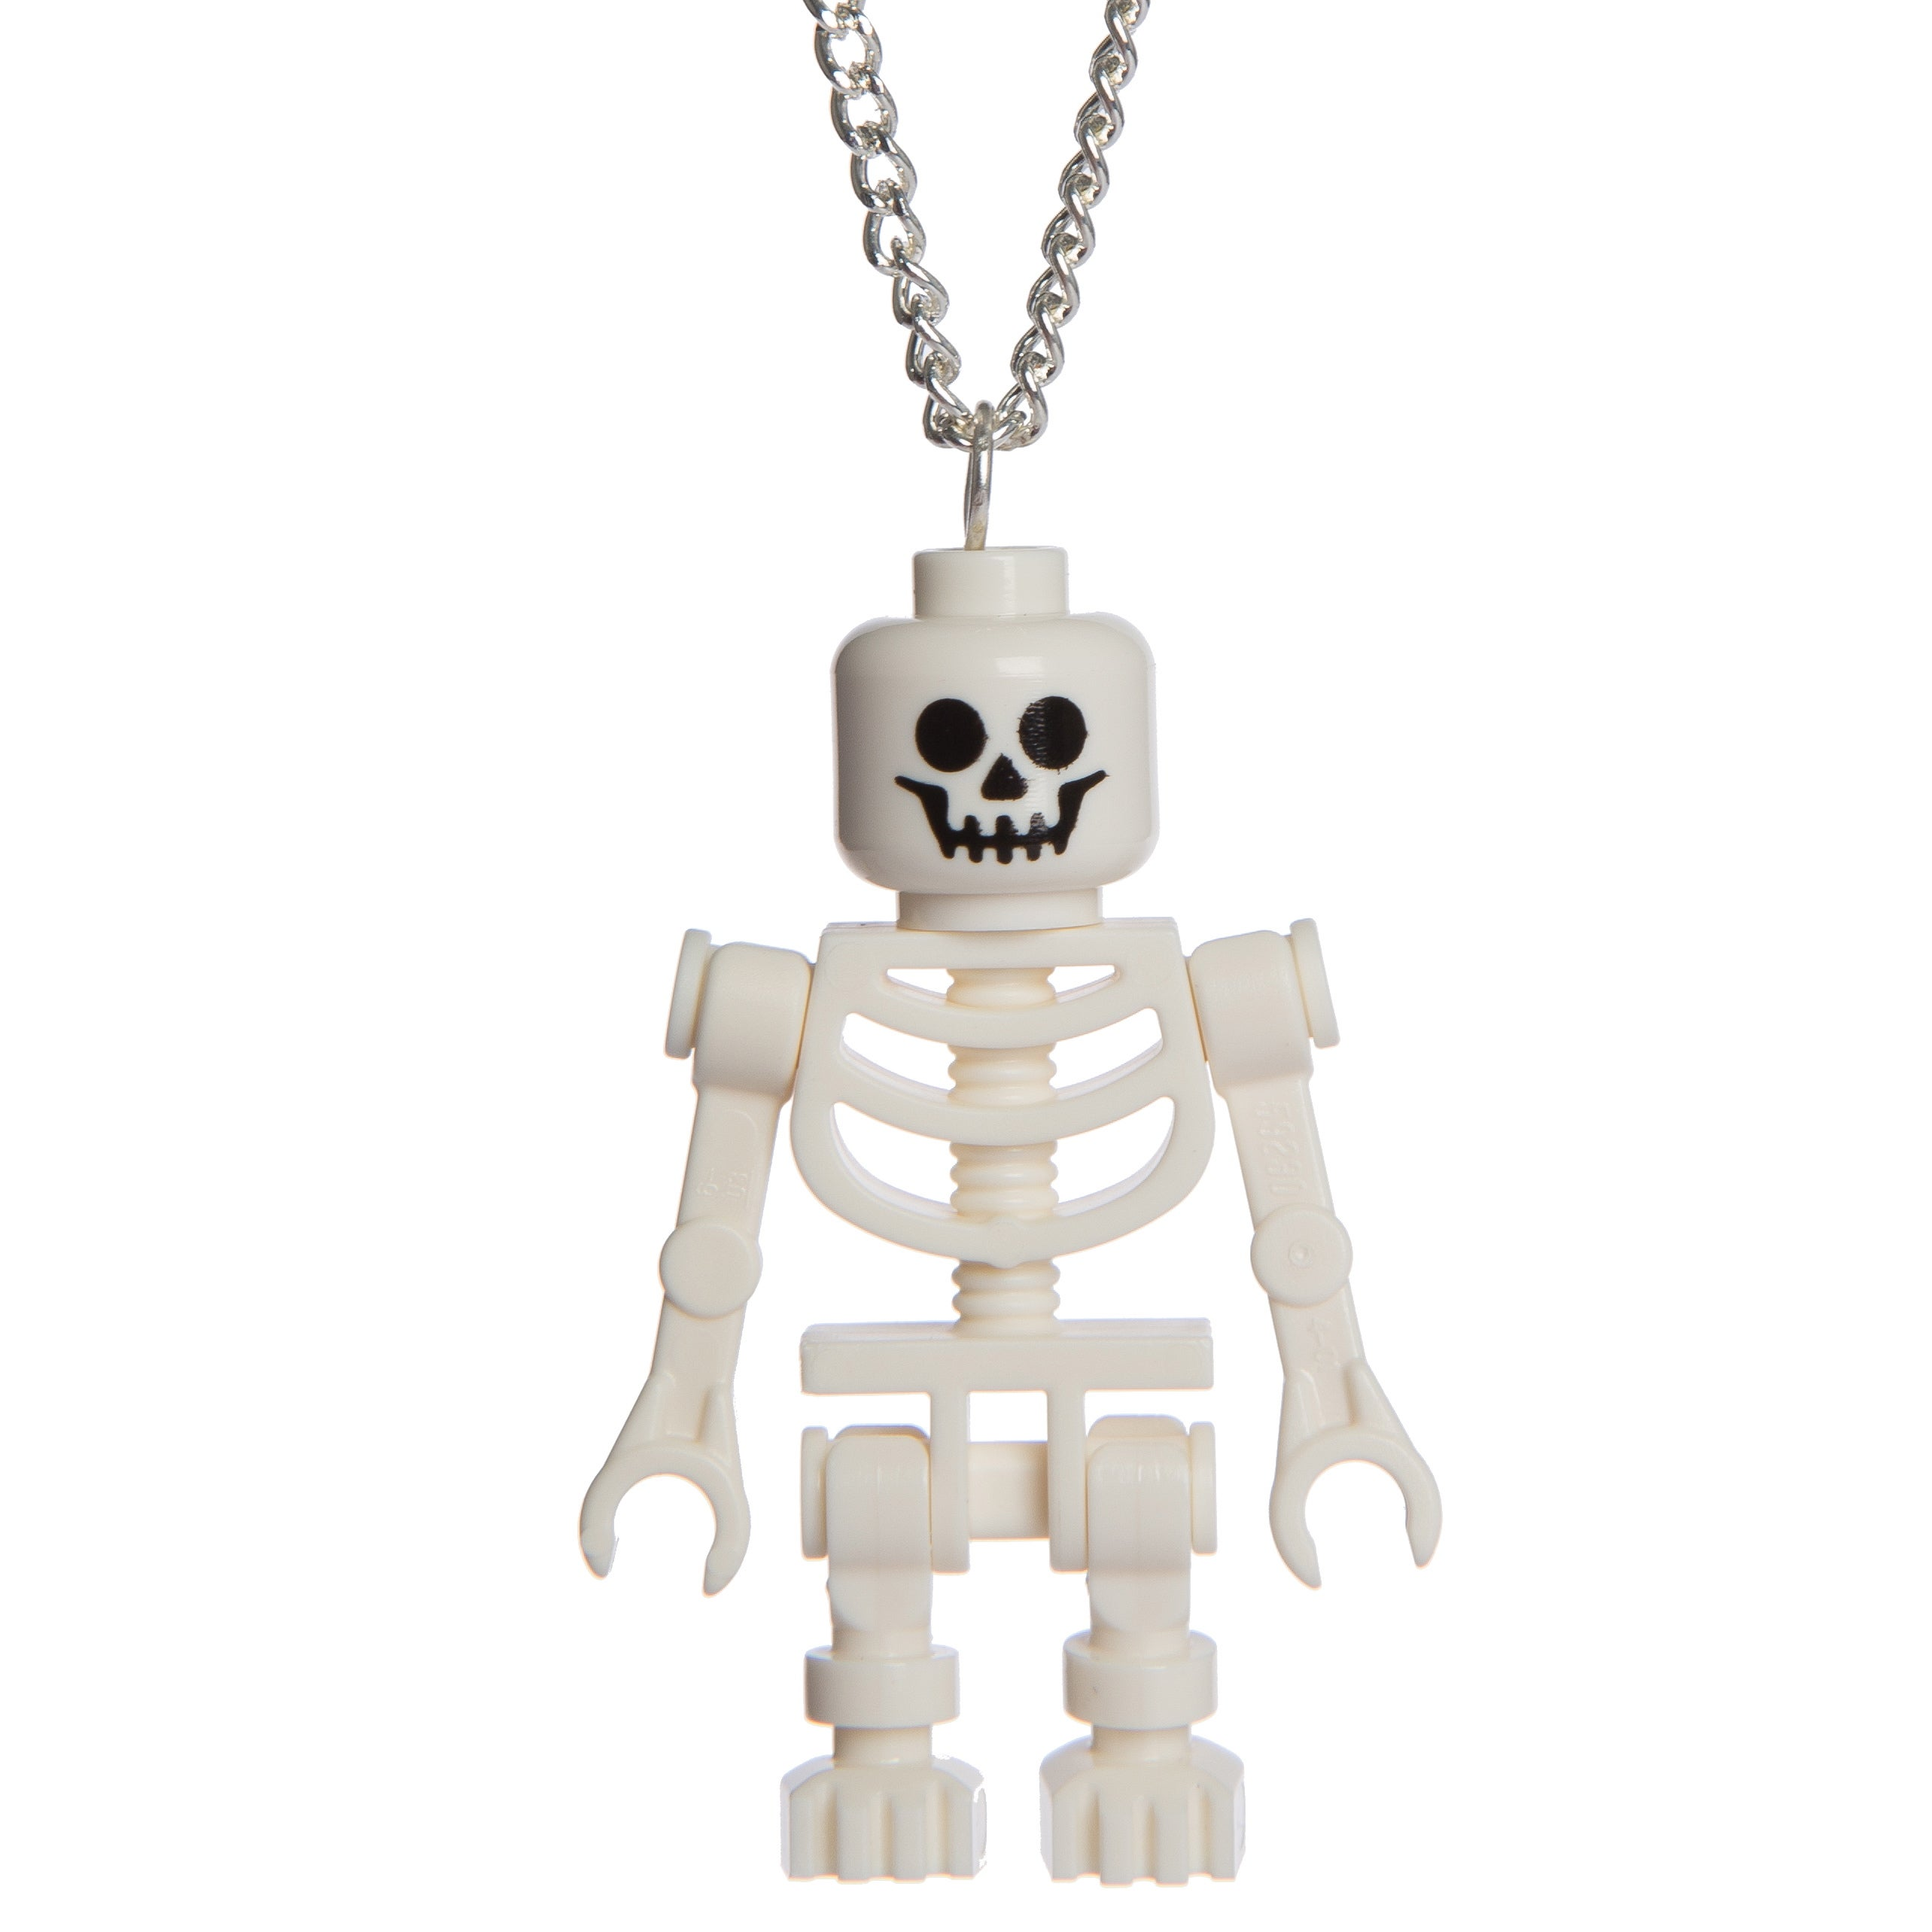 jelly button jewellery lego skeleton necklace